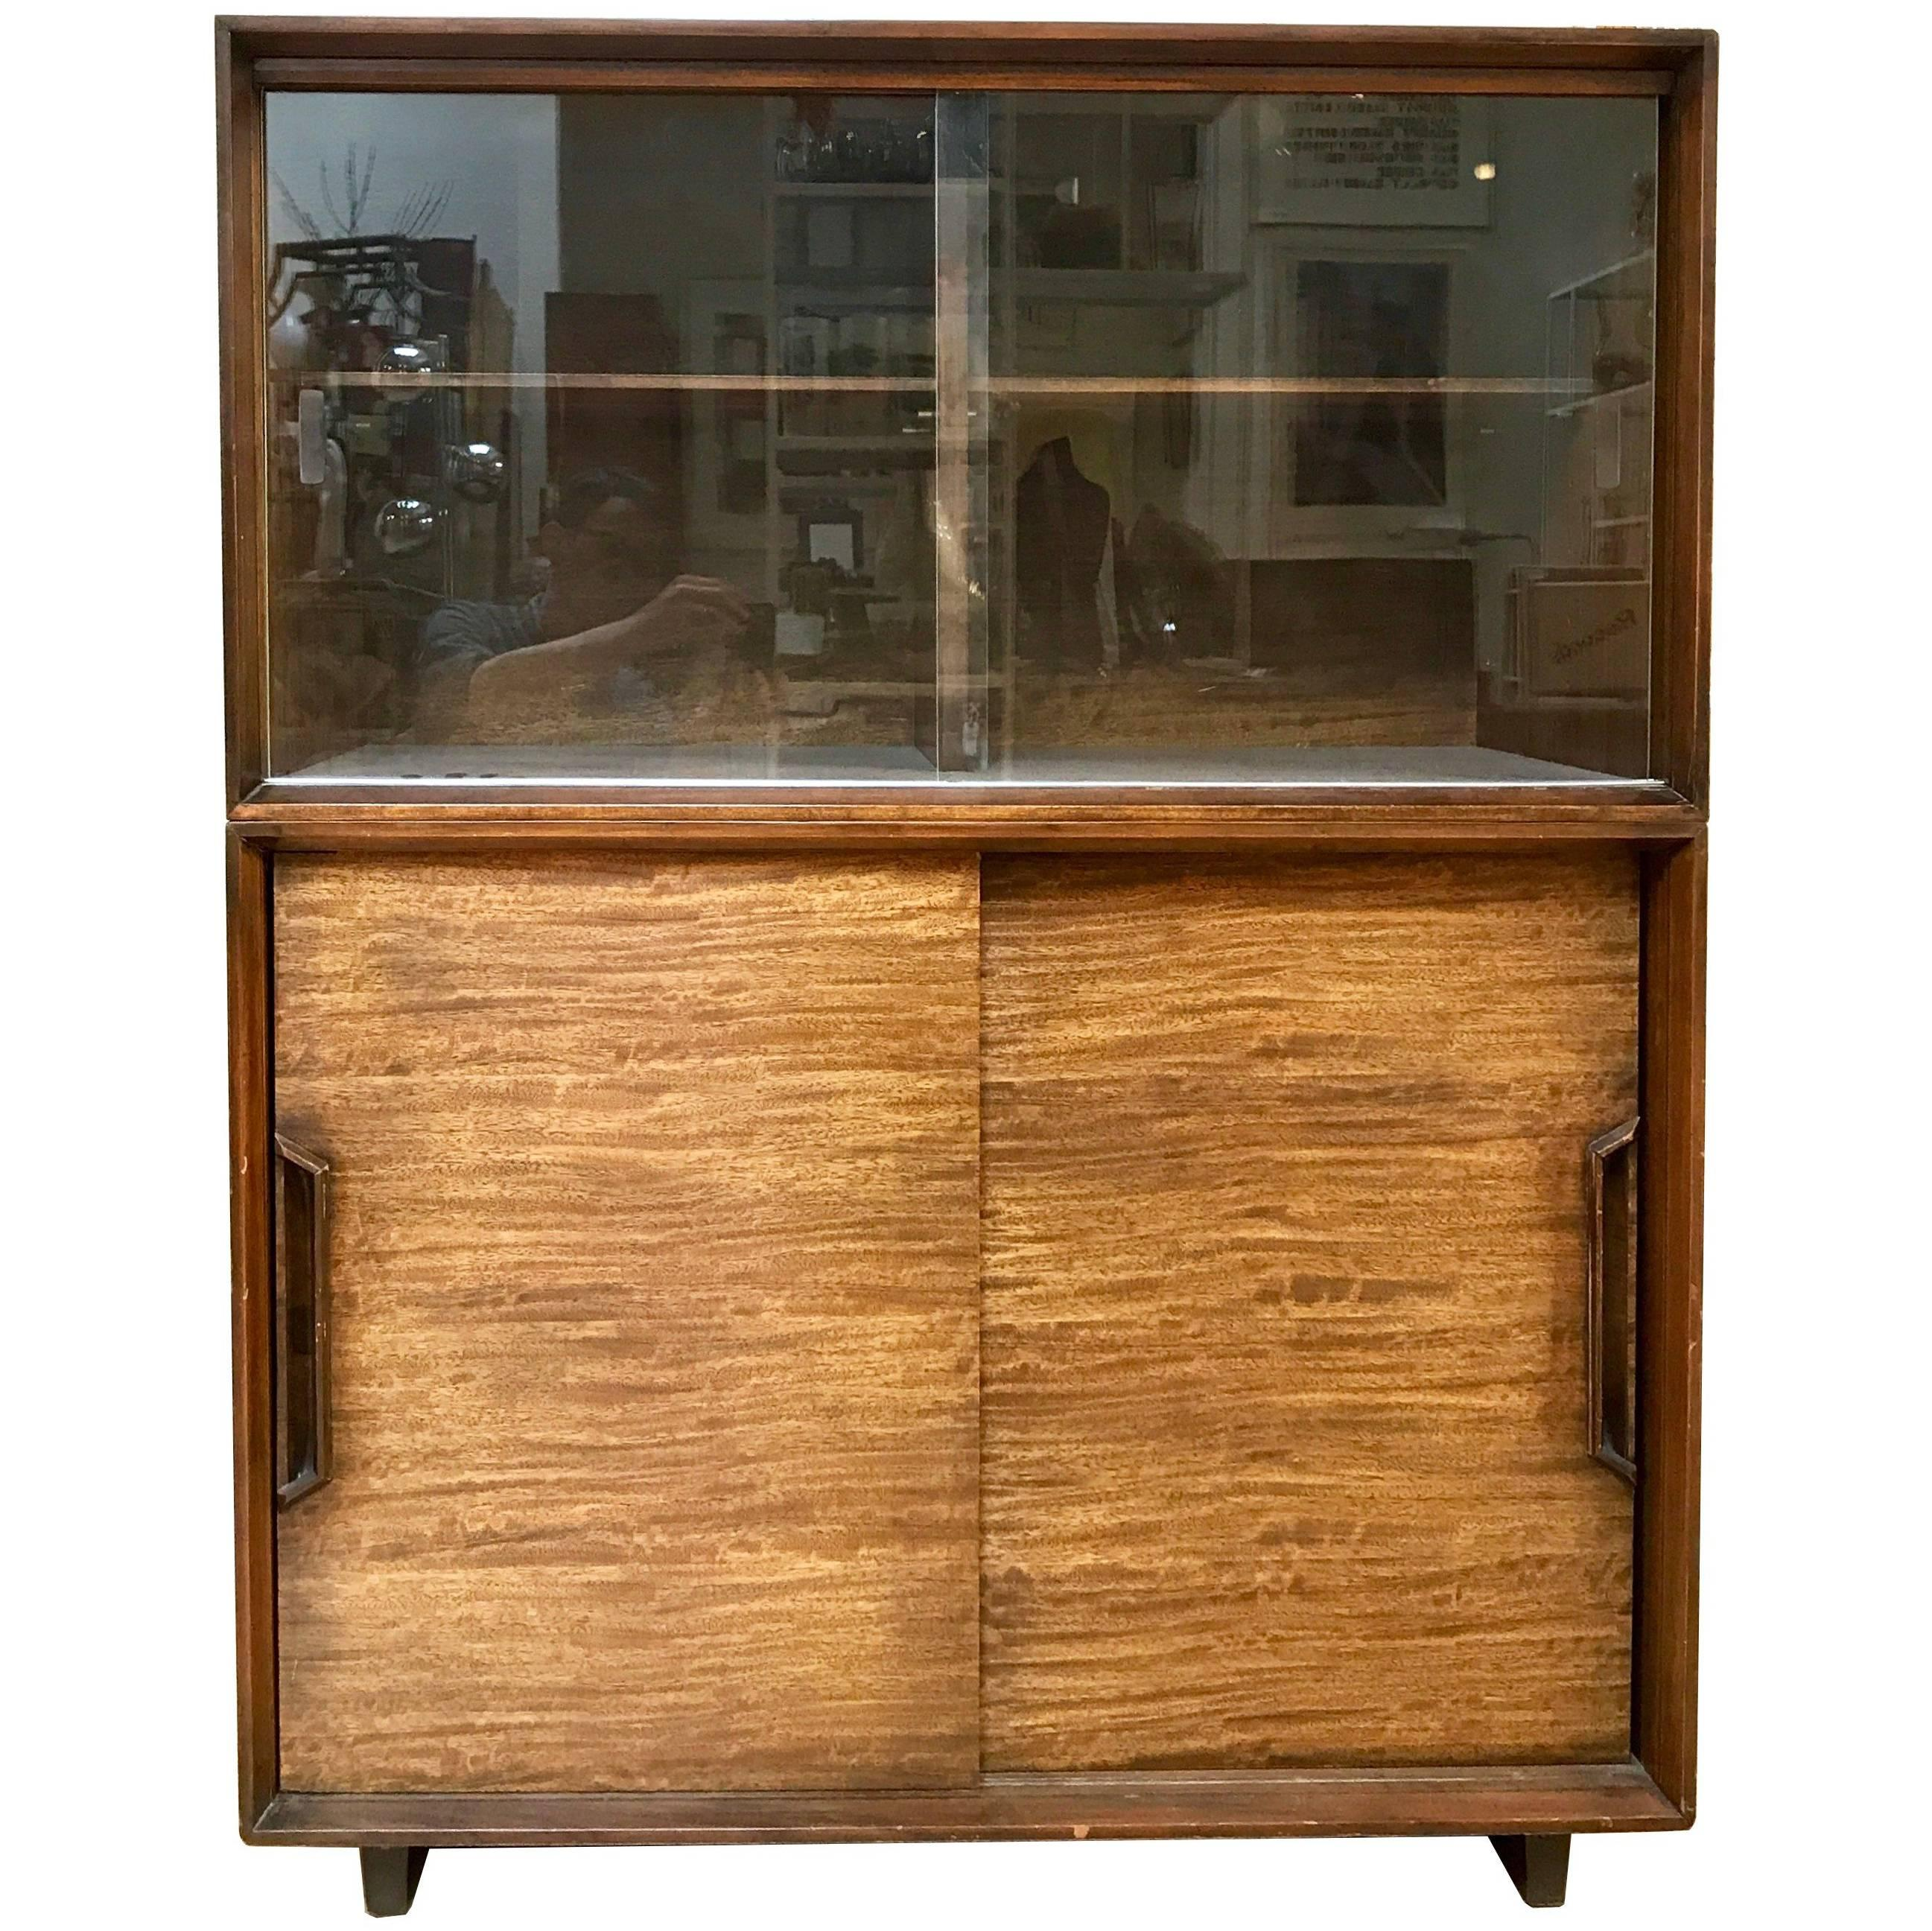 1950s Milo Baughman For Drexel Perspective Mindoro Wood China Hutch For Sale